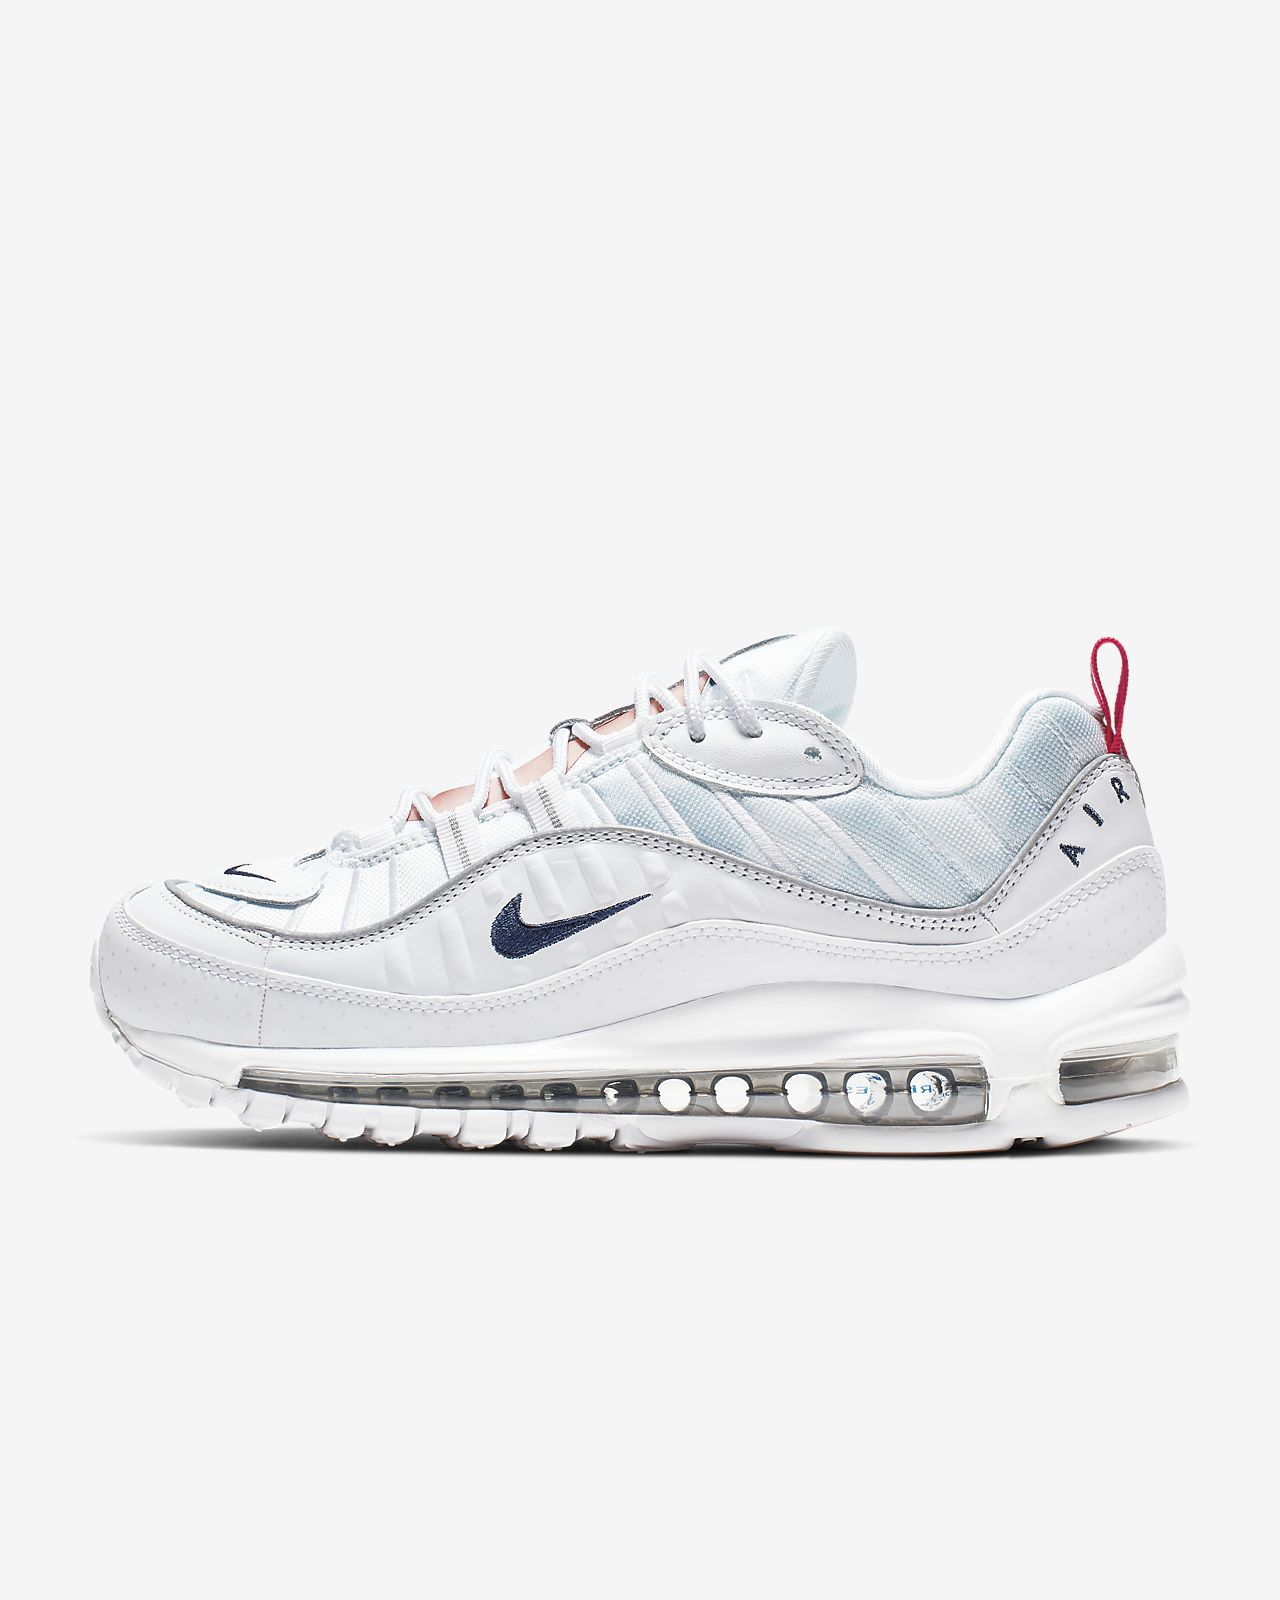 low priced eec14 253e3 Nike Air Max 98 Premium Unité Totale Women's Shoe